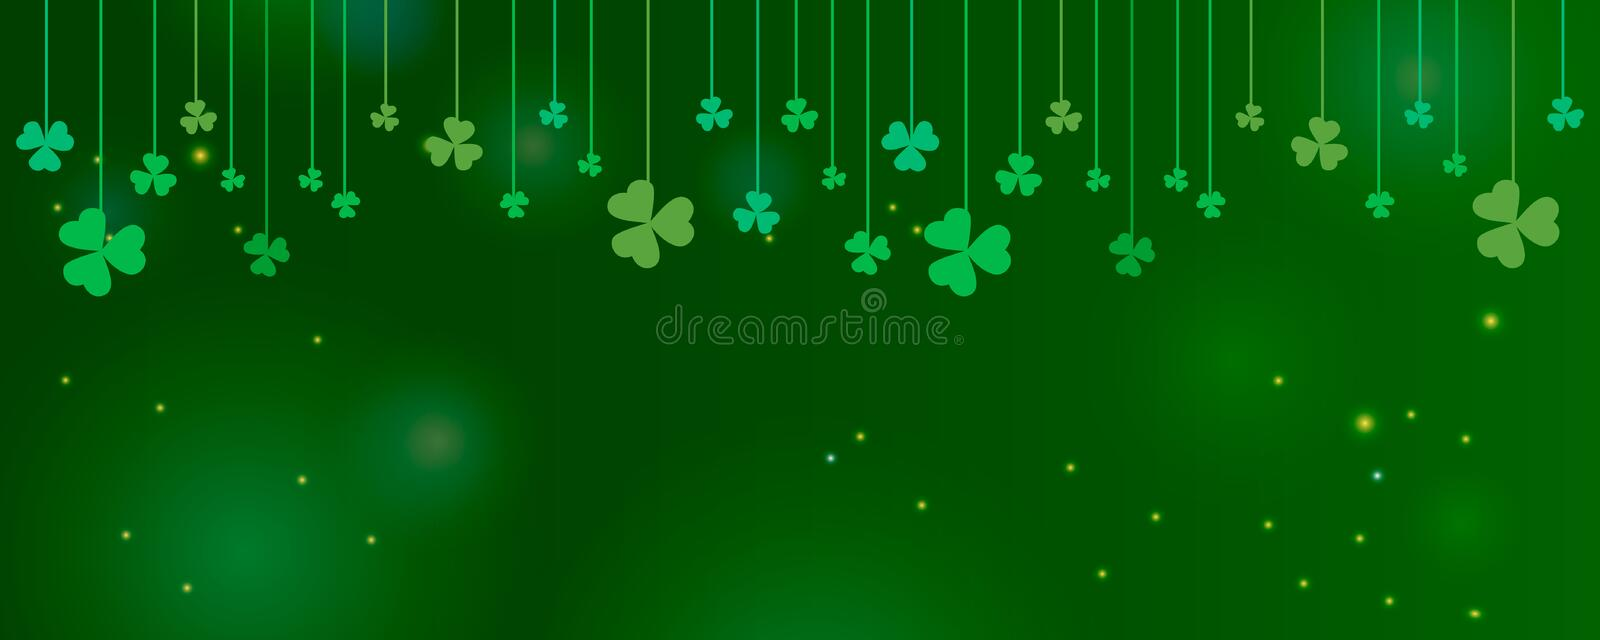 Clover shamrock leaves hung on strings on dark green background. Abstract St. Patrick`s day border horizontal panorama background stock illustration